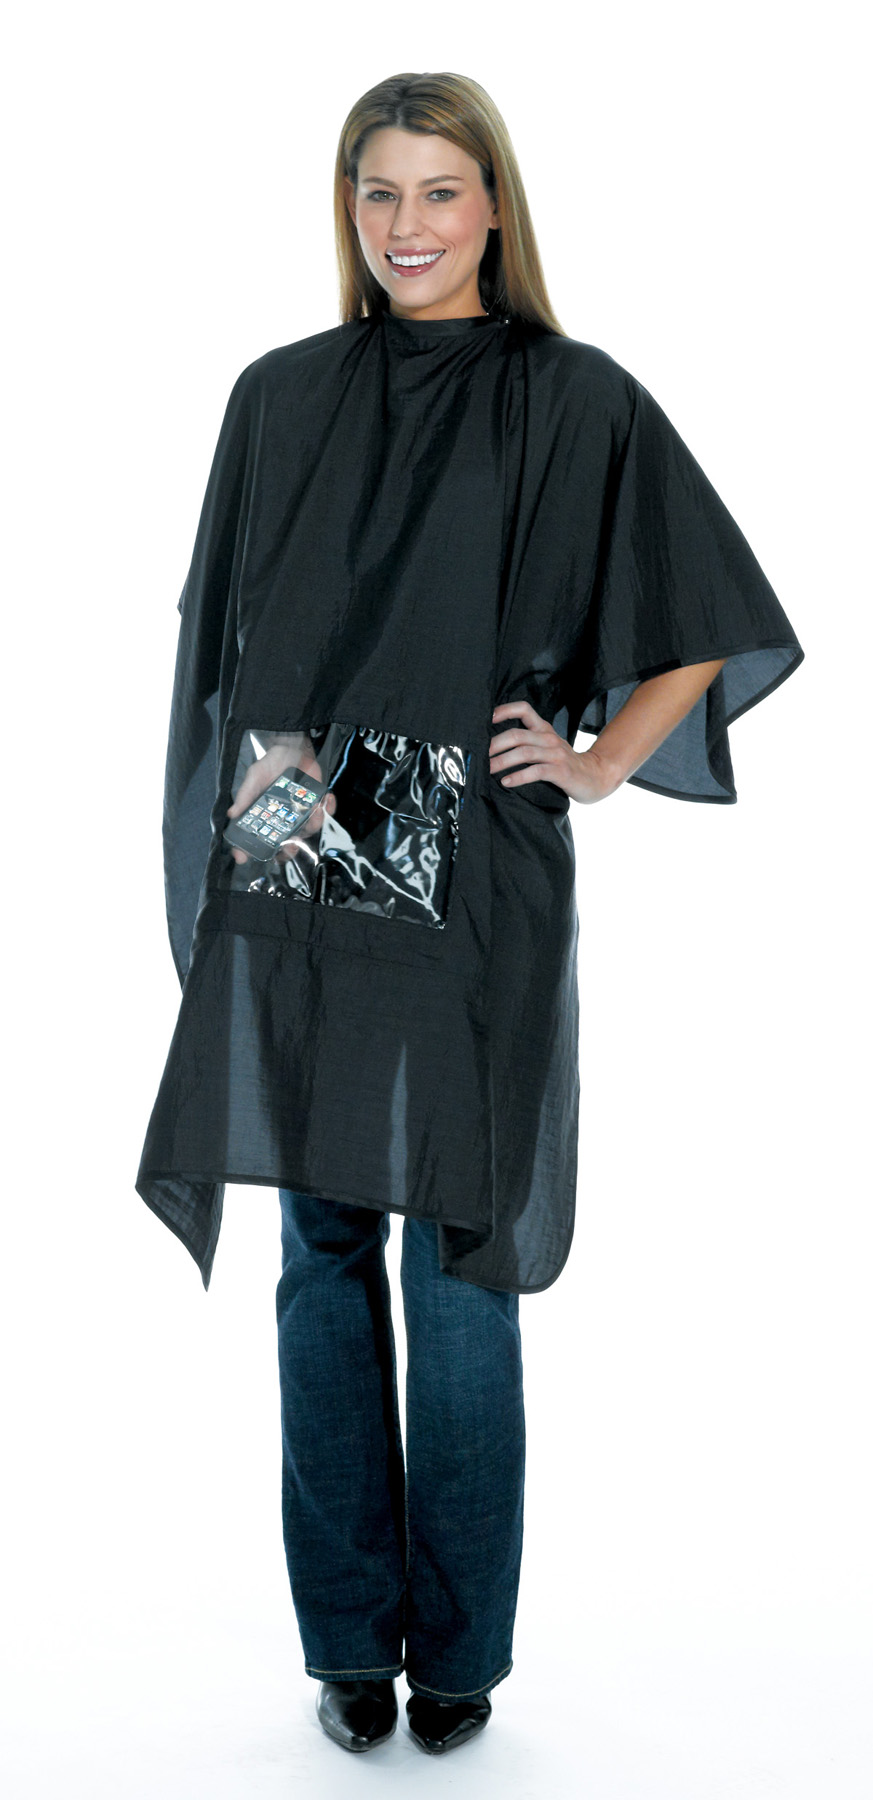 icape, hair, capes, salon capes, cutting capes, tablet capes